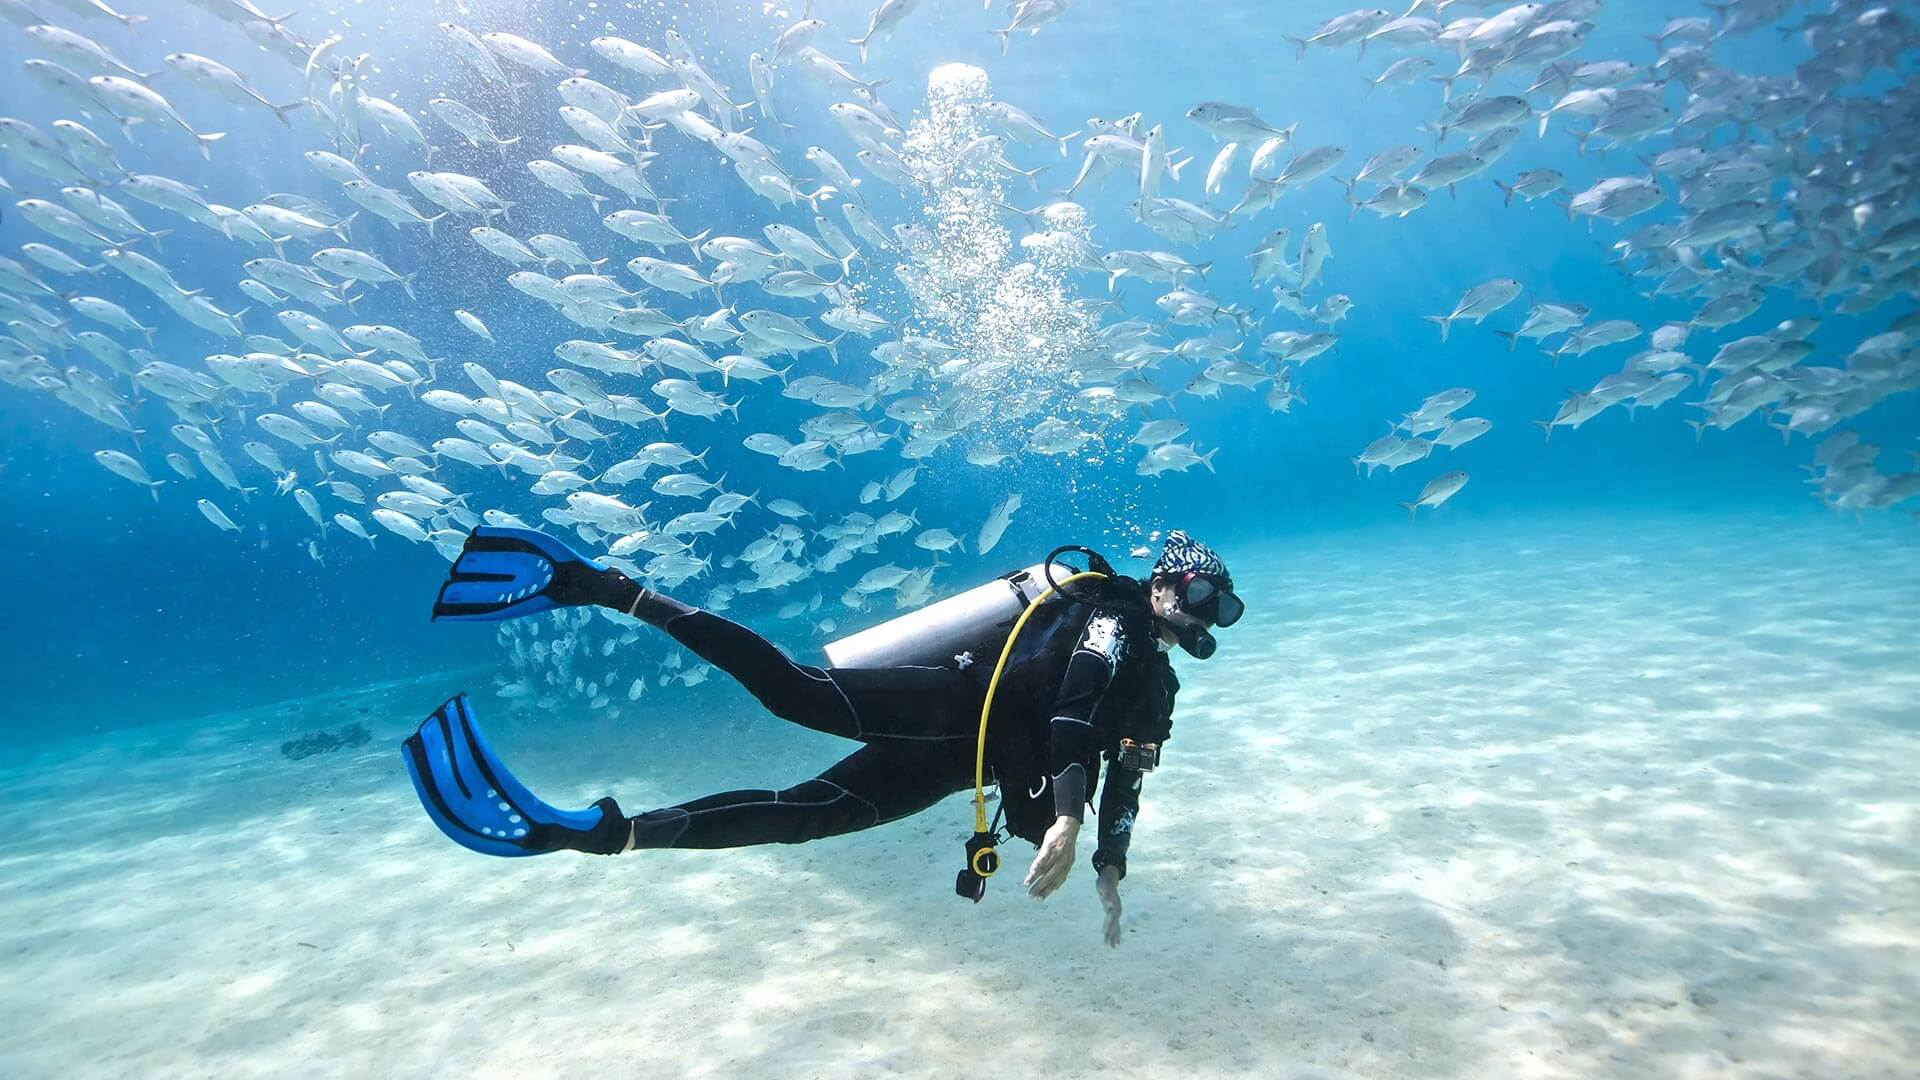 Image results for scuba diving